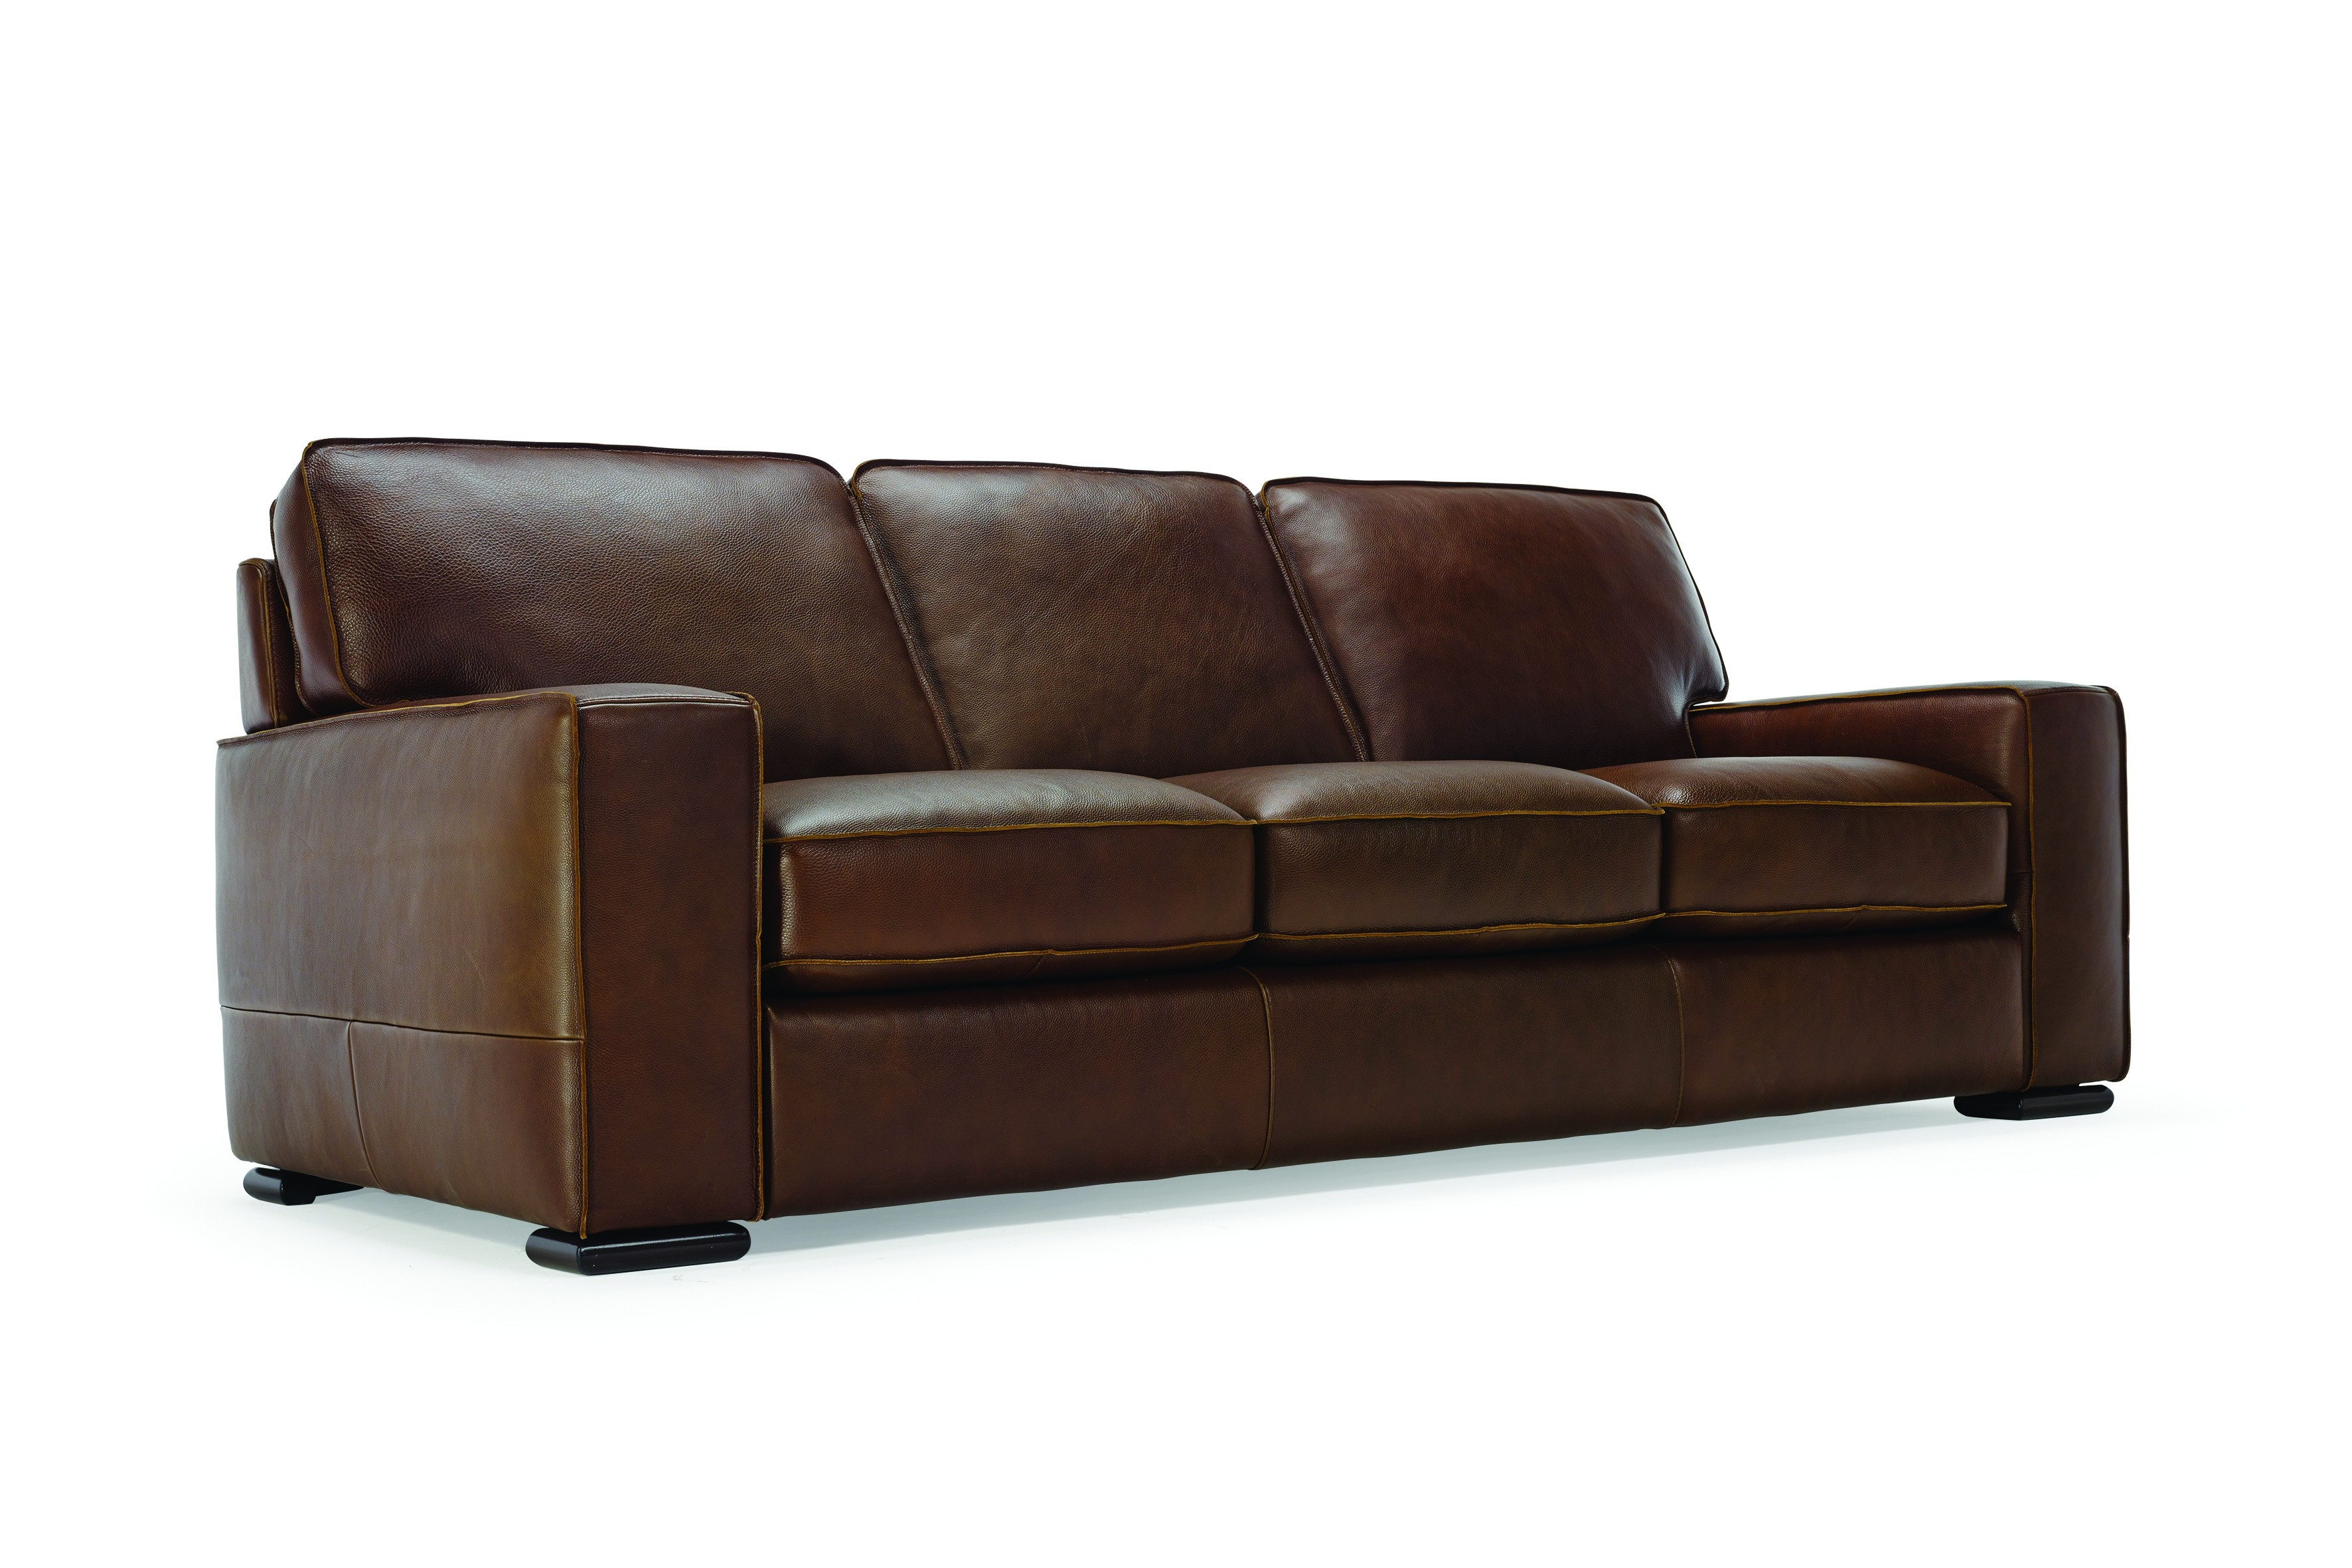 Furniture Www Macys Com Furniture Traditional Leather Sofa With Traditional Leather Couch (Image 4 of 15)